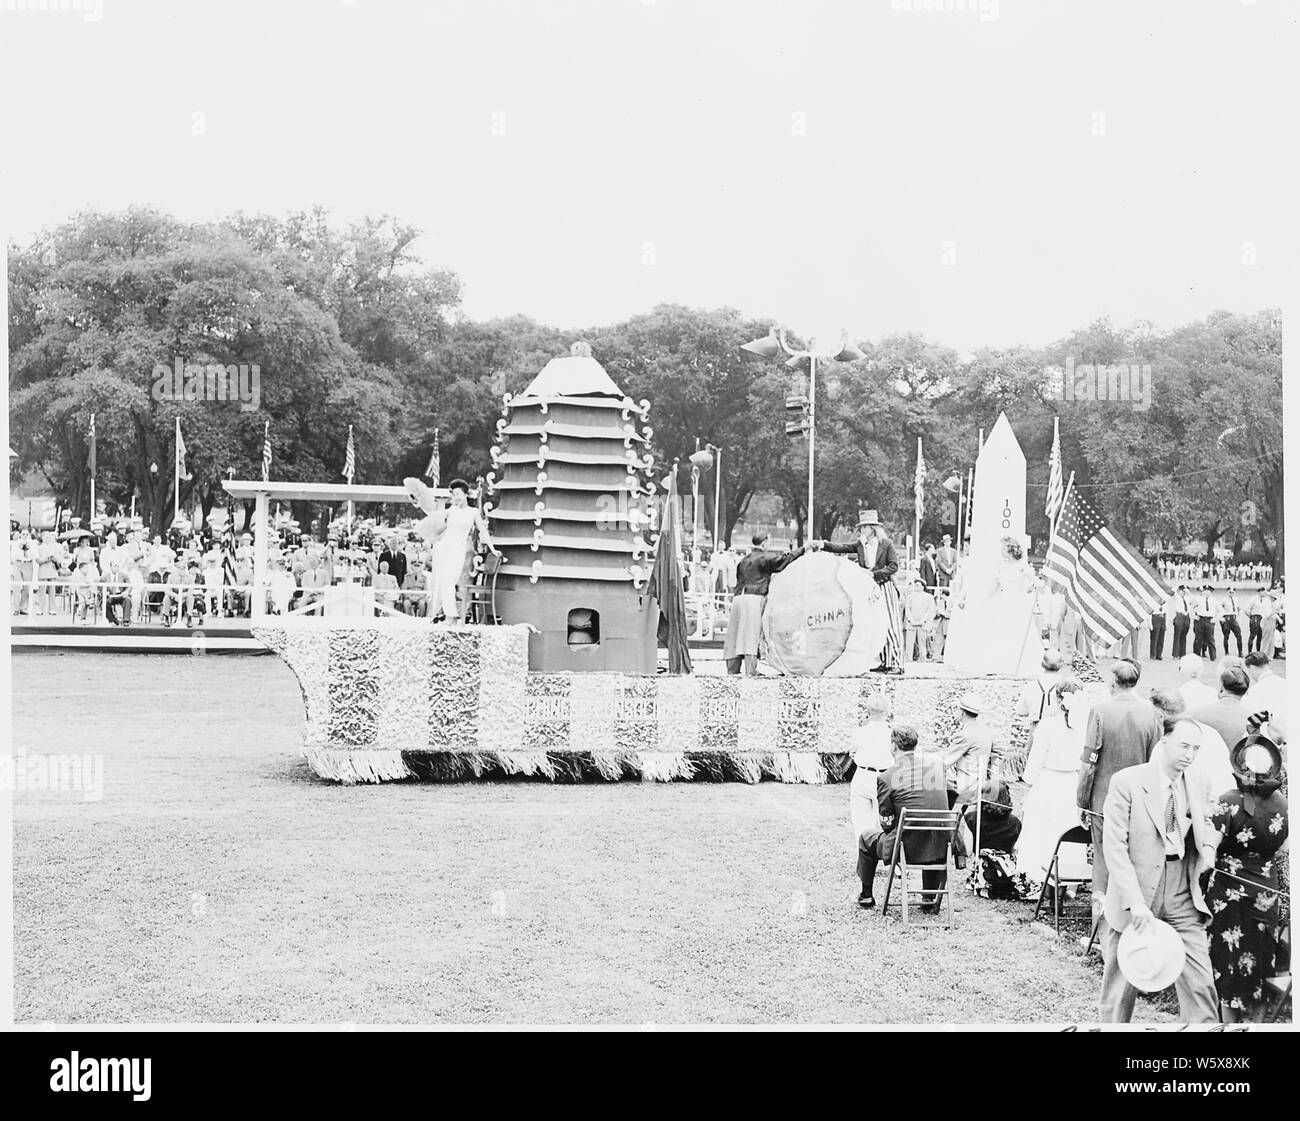 President Truman attends ceremonies celebrating the 100th anniversary of the Washington Monoument. He watches the parade from the reviewing stand. Stock Photo